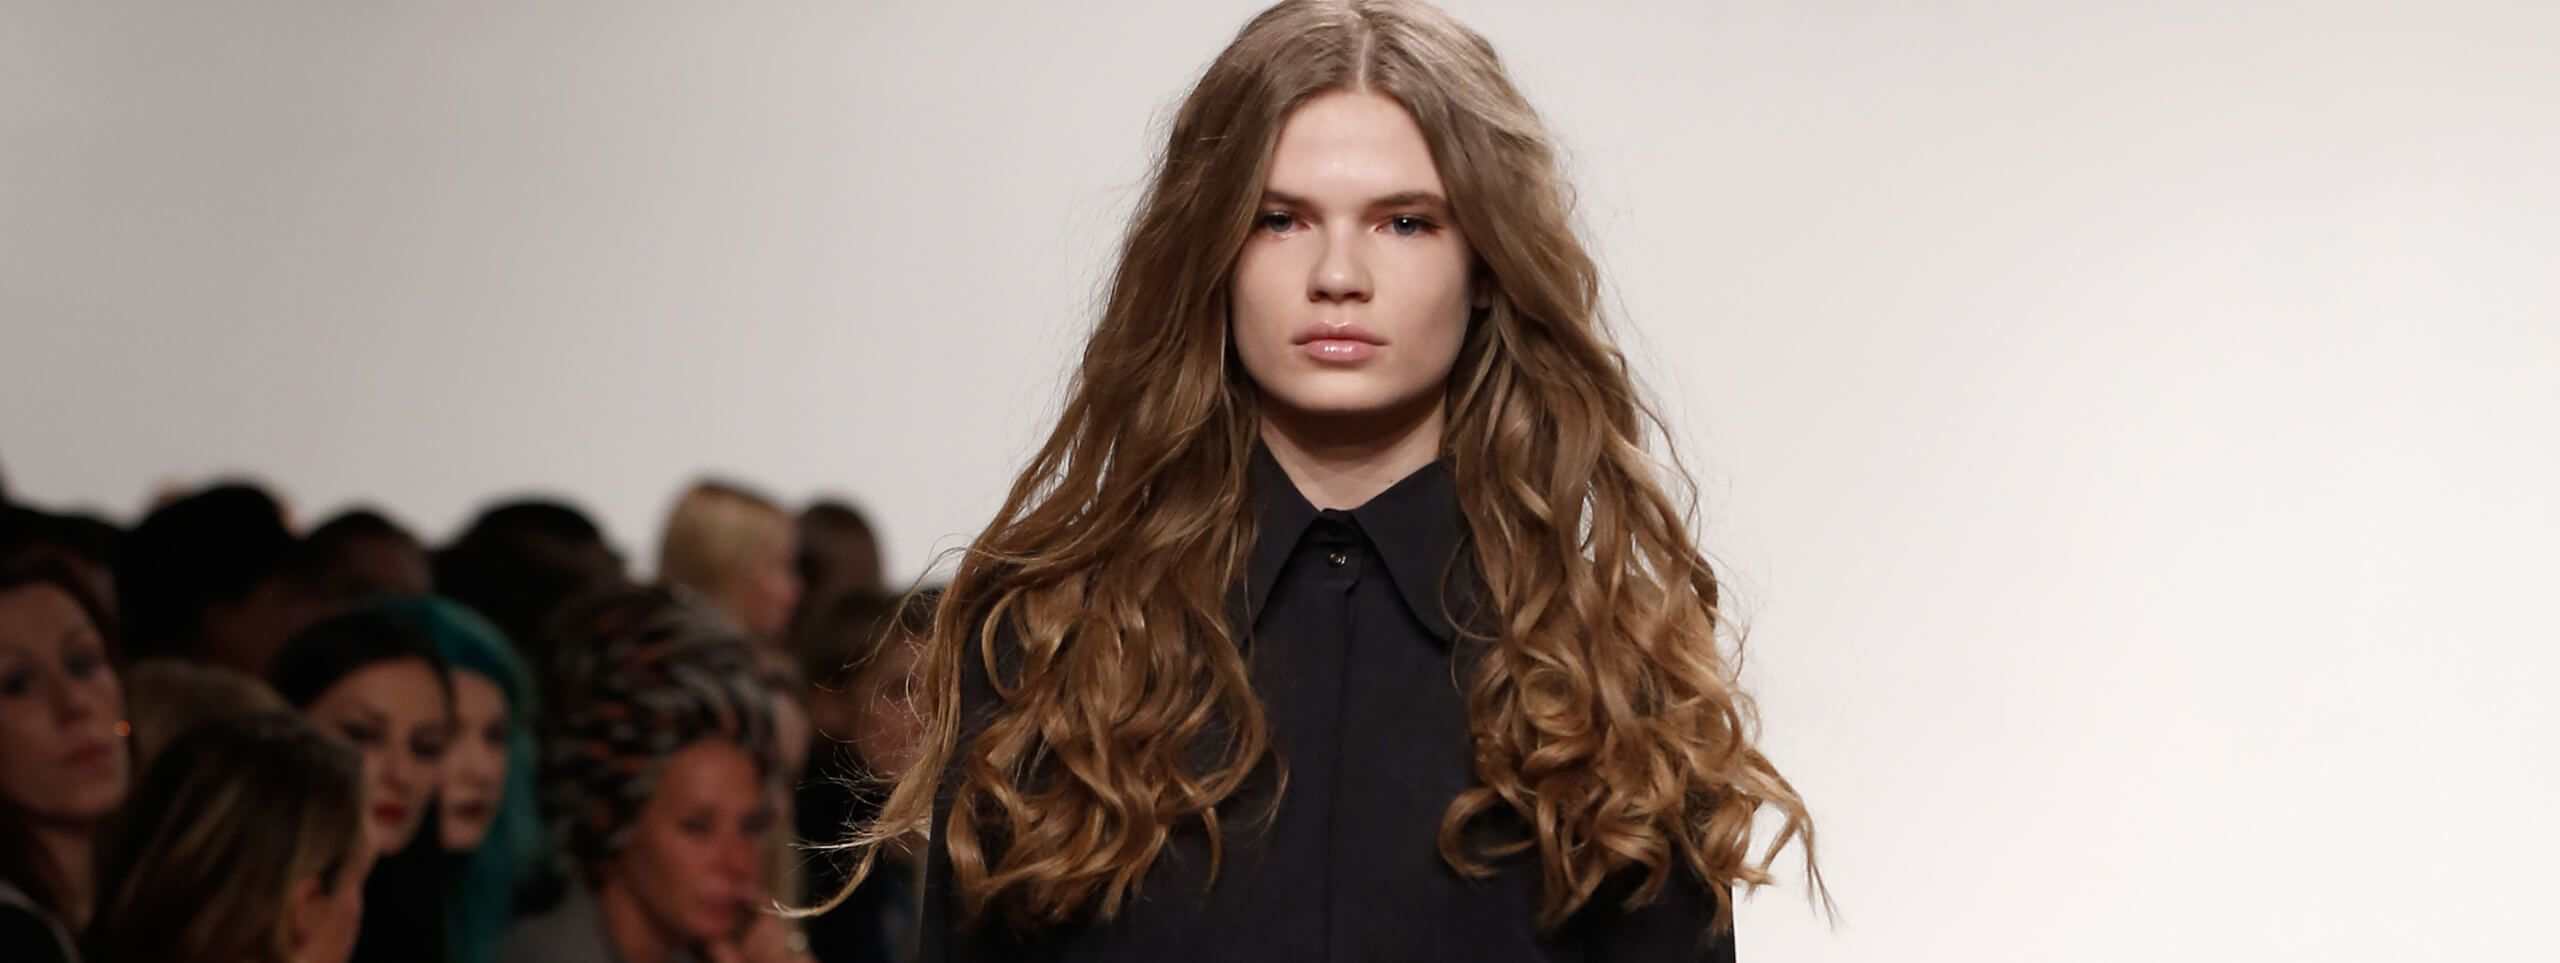 Model wears curly hairstyle with straight roots